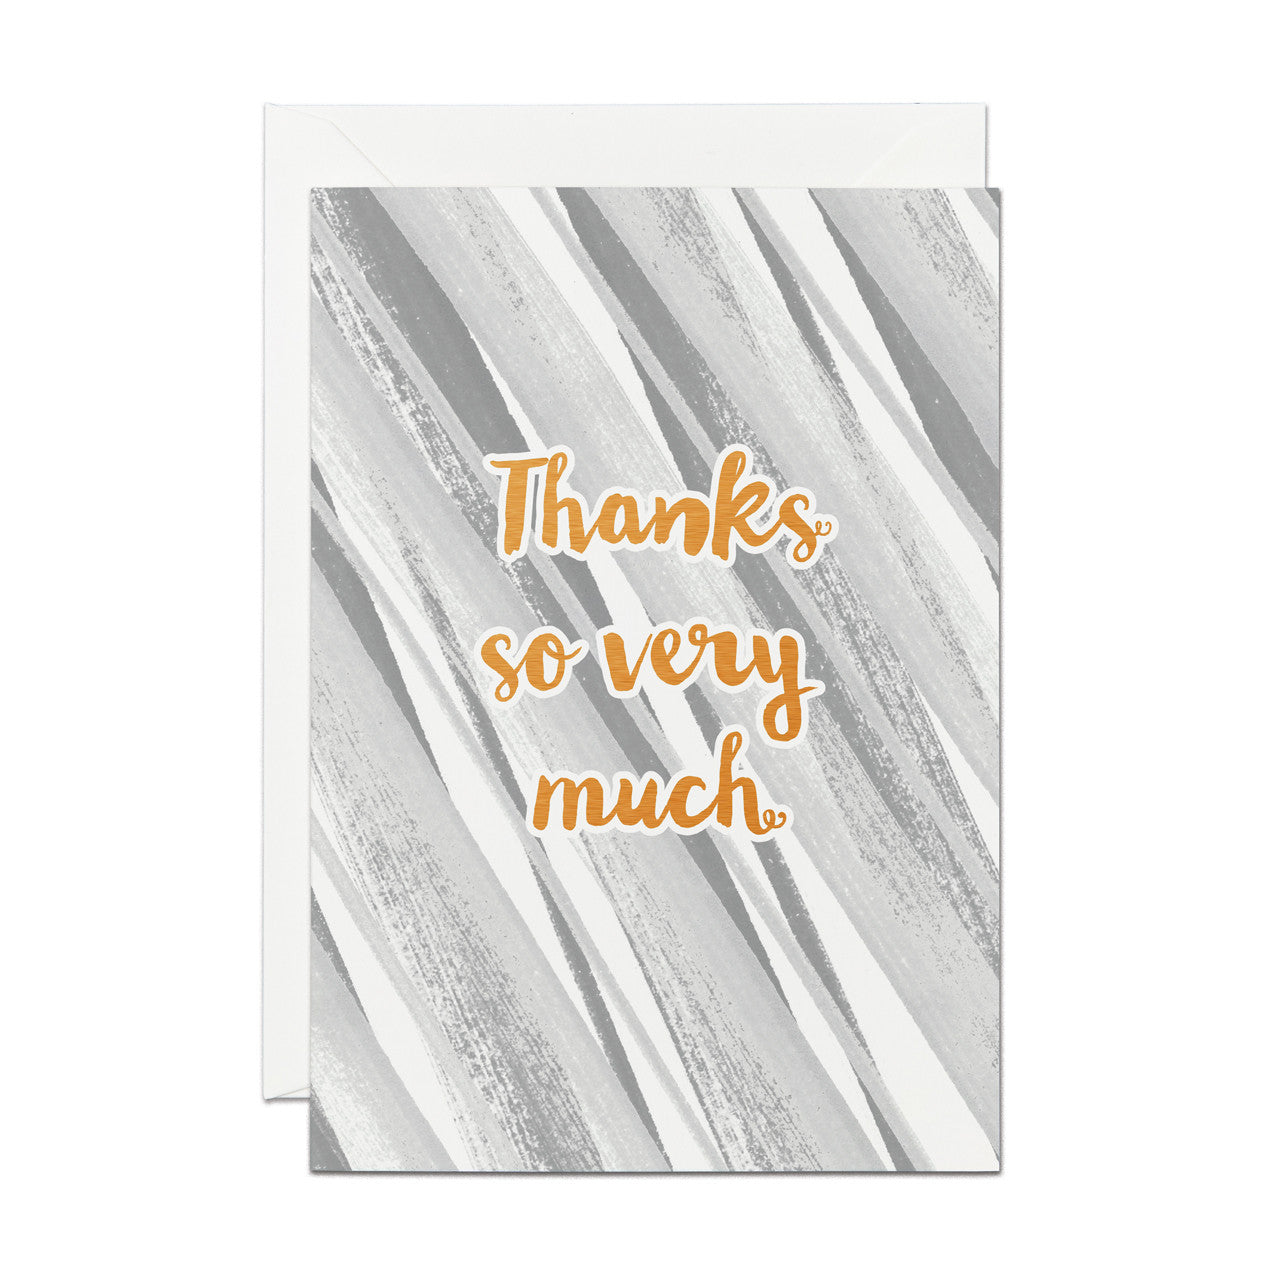 Thanks So Very Much- Copper Foil greeting card (PACK OF 6)